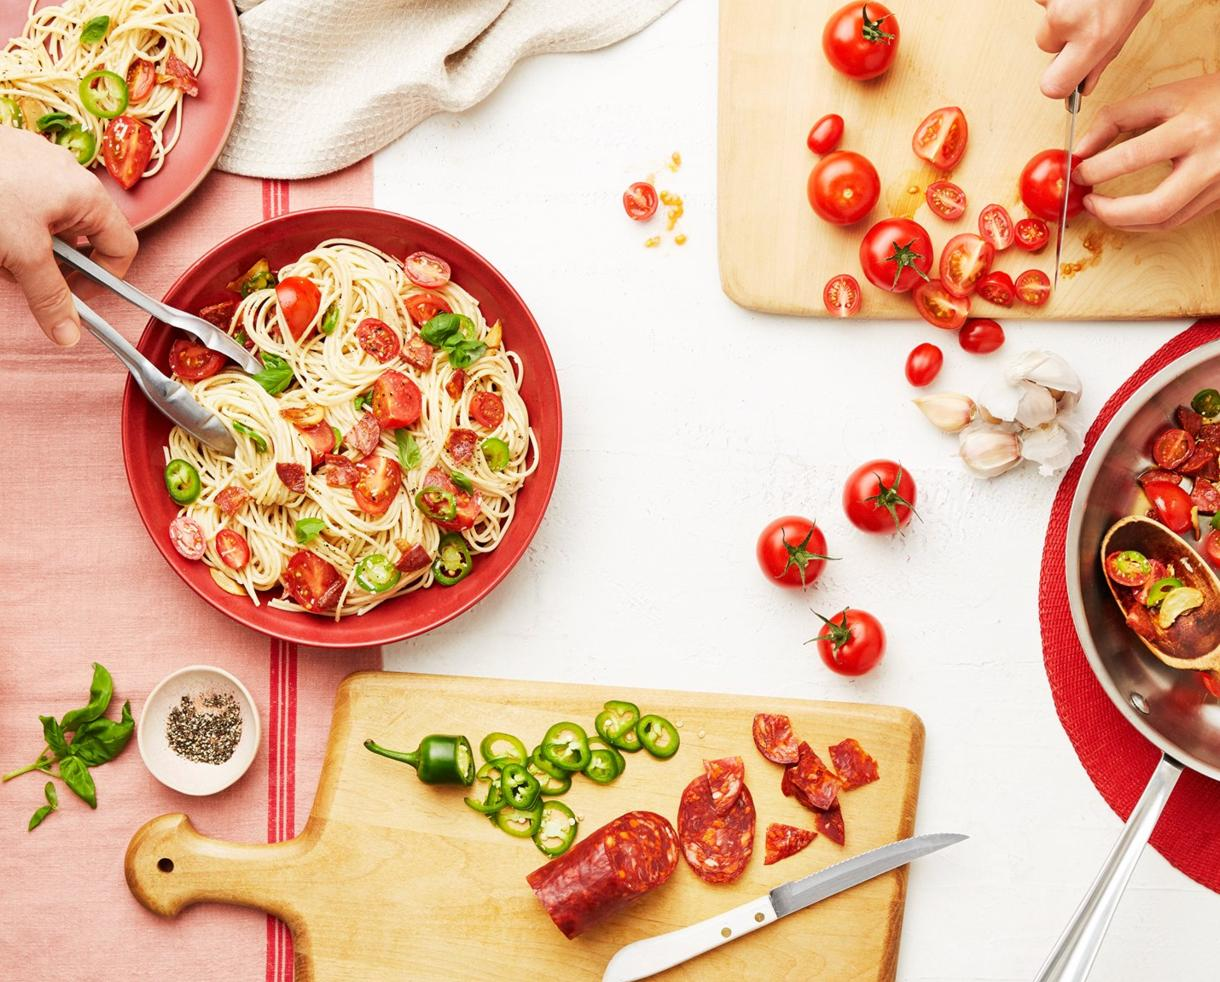 Goodbye Dinnertime Hassle, HelloFresh! Get $35 Off Your First Delivery of HelloFresh!